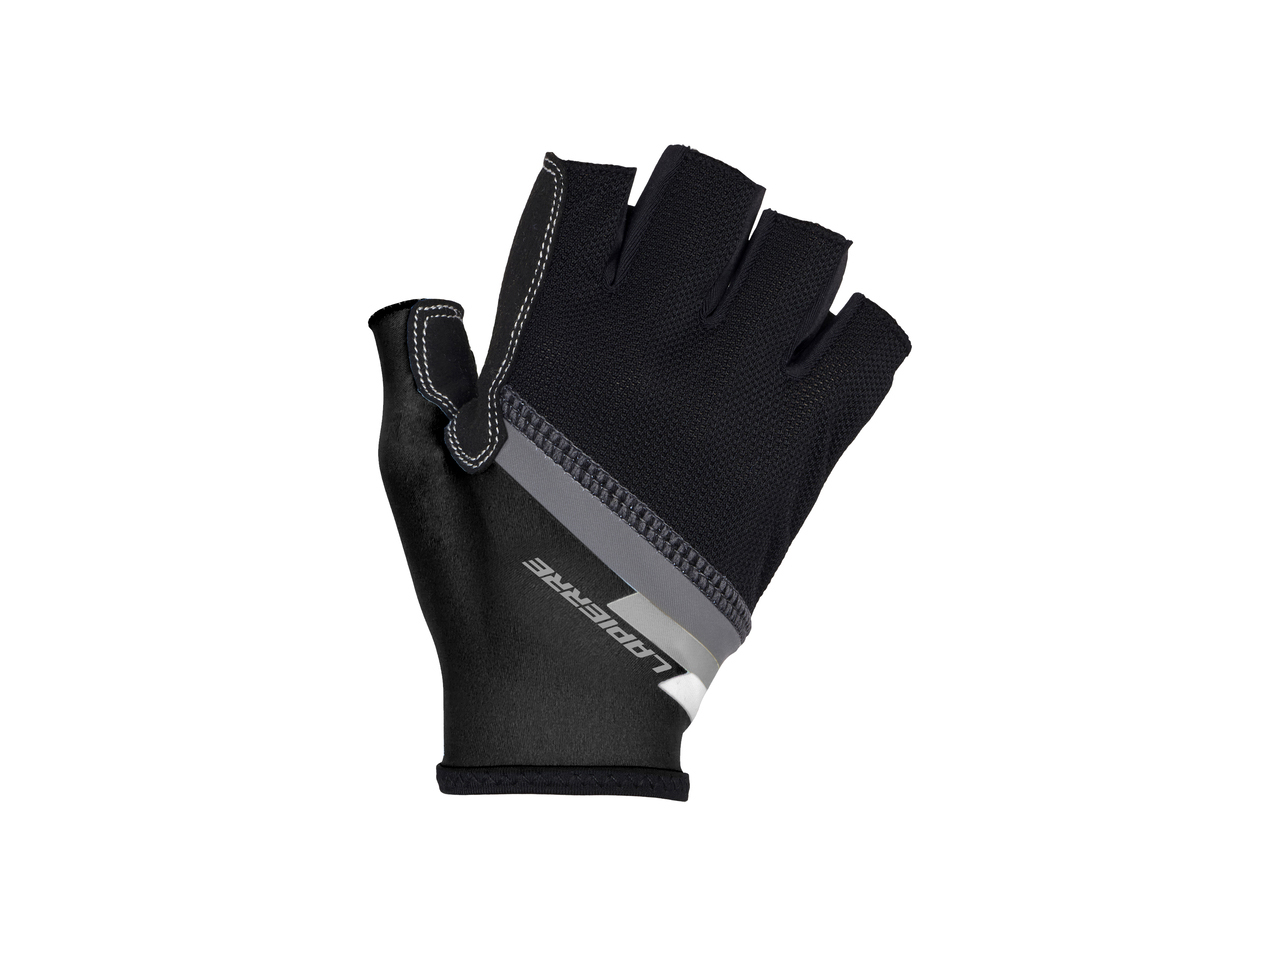 Lapierre San Remo cycling gloves - front